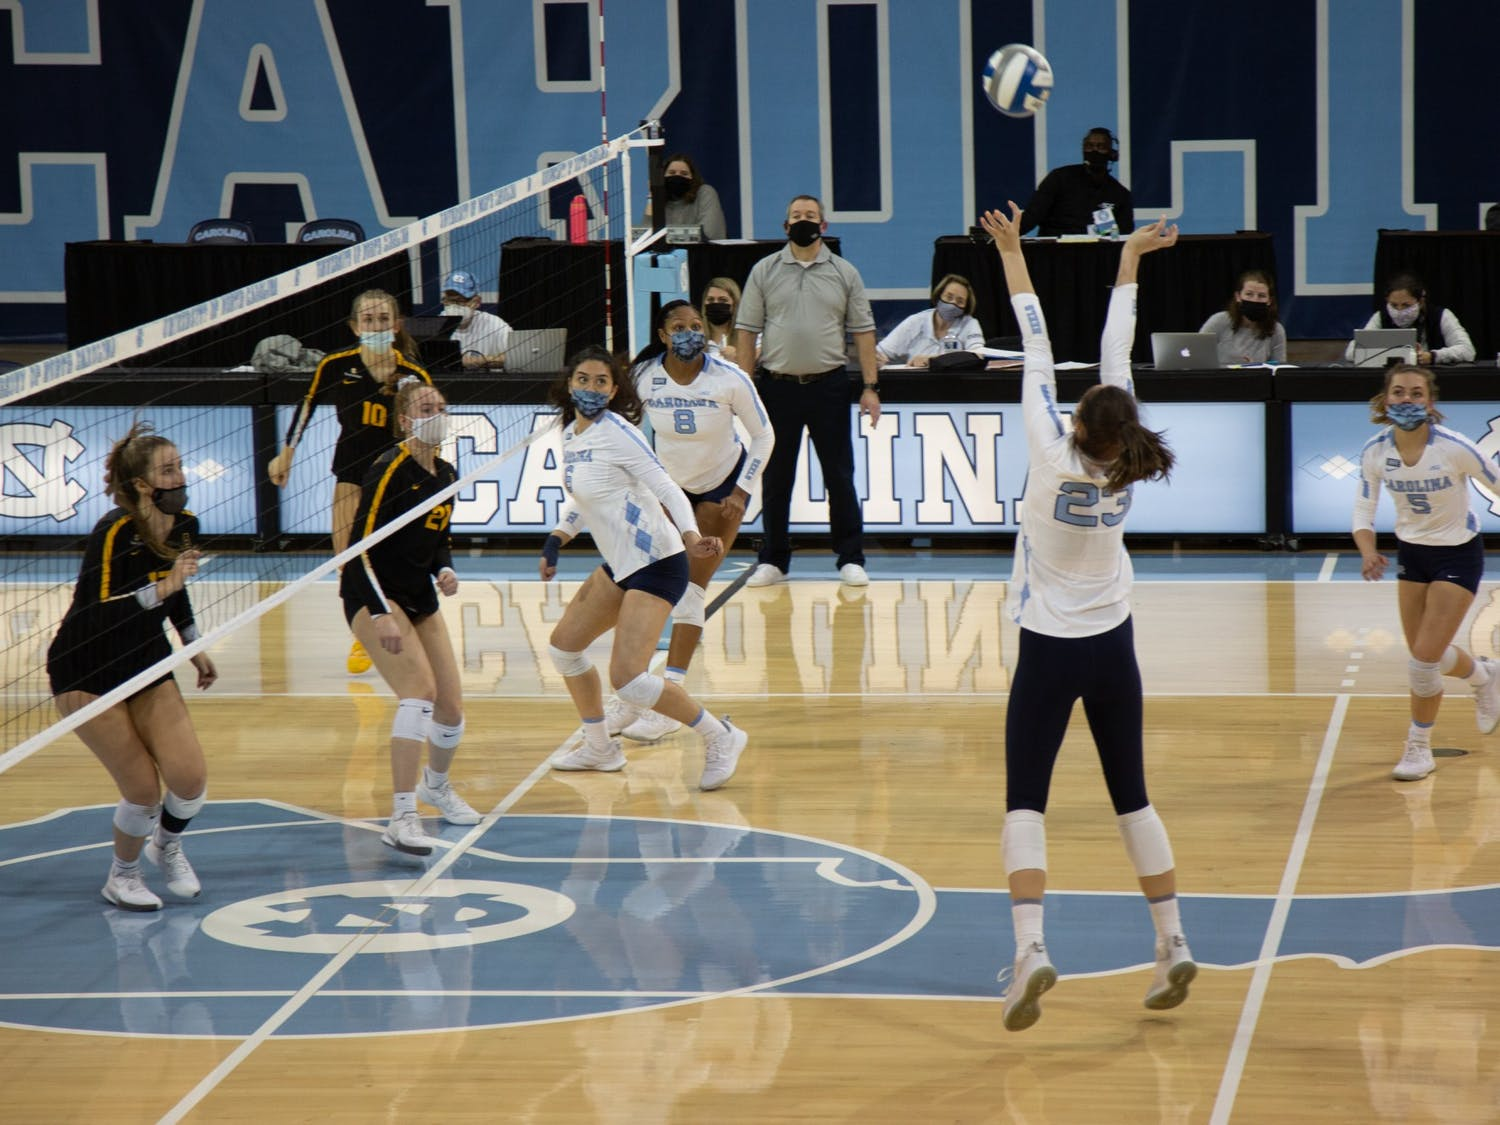 Sophomore outside hitter Parker Austin (23) prepares to hit the ball in a volleyball game against Appalachian State University on Thursday, Feb. 18, 2021 in Carmichael Arena. The Tar Heels won 3-0.